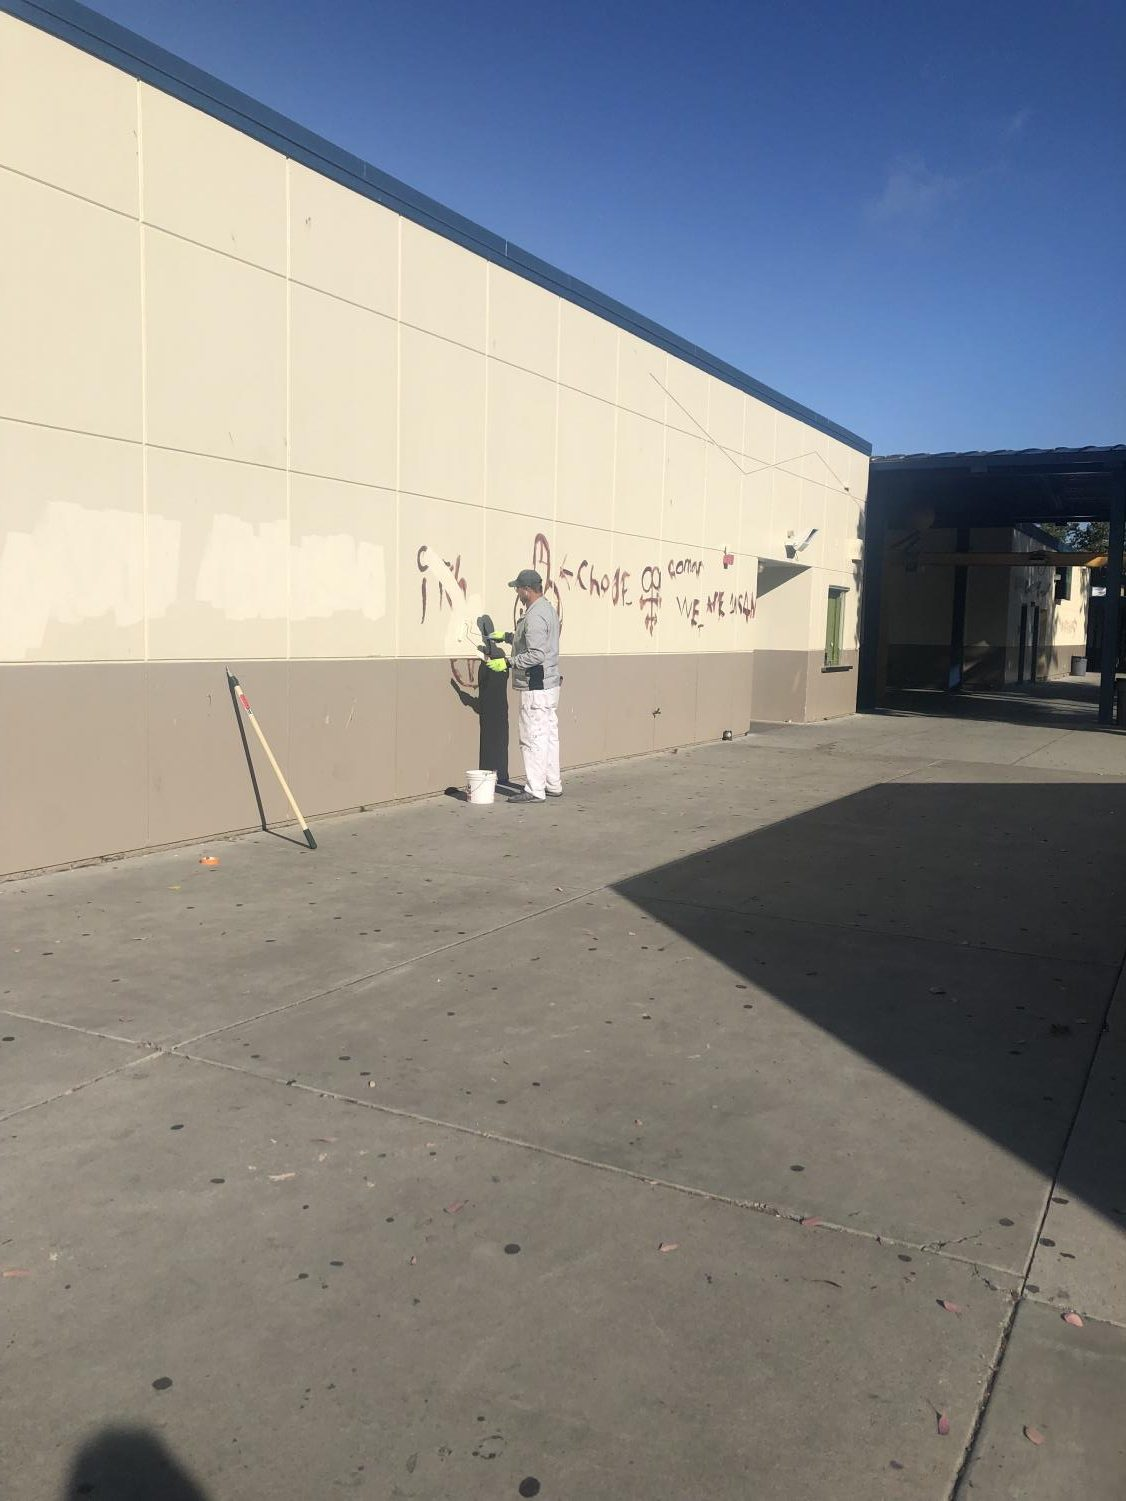 workers painting the wall to hide the crude messages and images on June 6th, 2019. (Nick Bernwanger Lincoln Lion Tales)